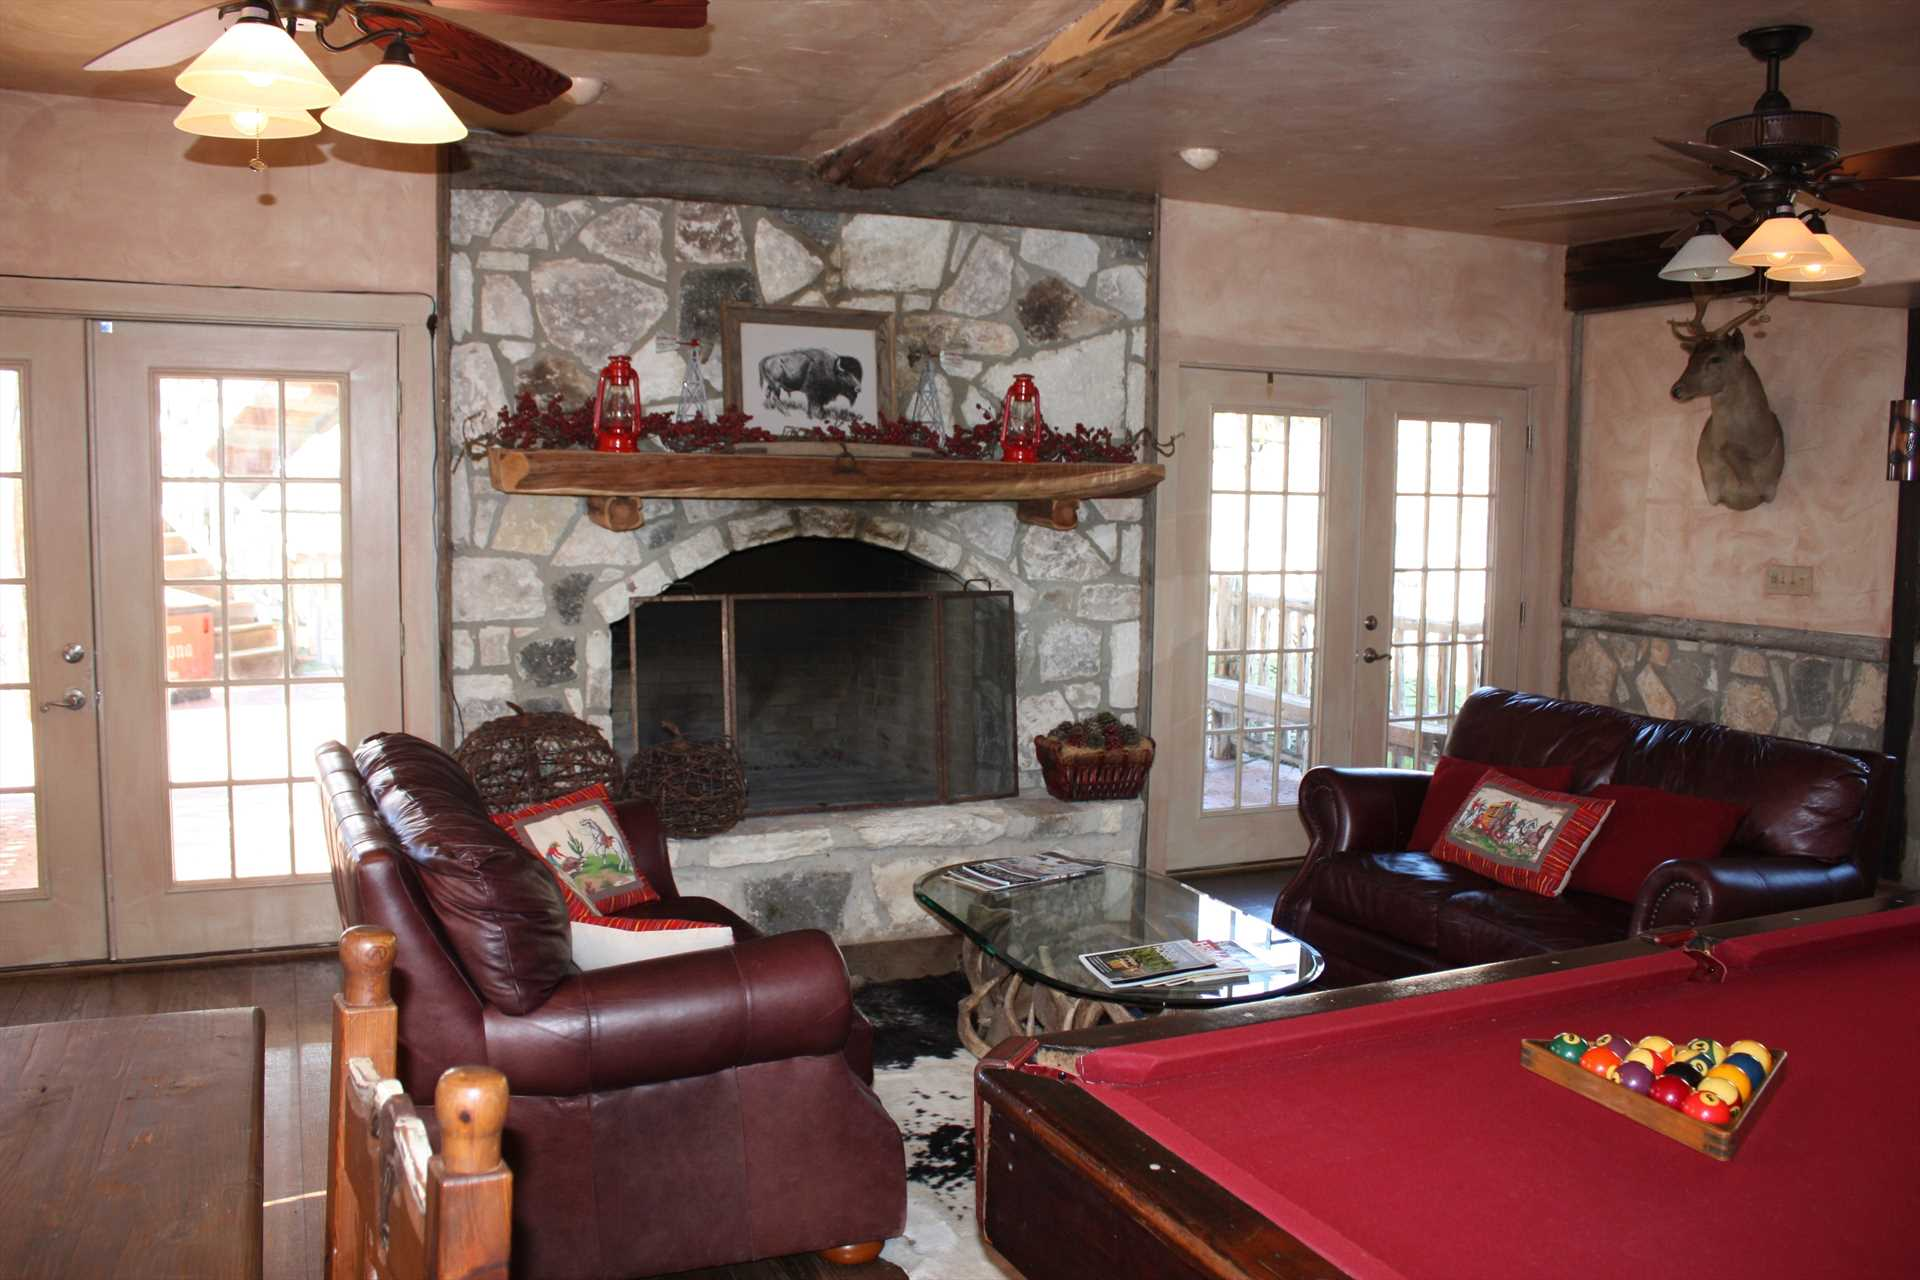 A regal stone fireplace and beamed ceiling are just two of the charming touches you'll find at 7 Canyons Ranch.